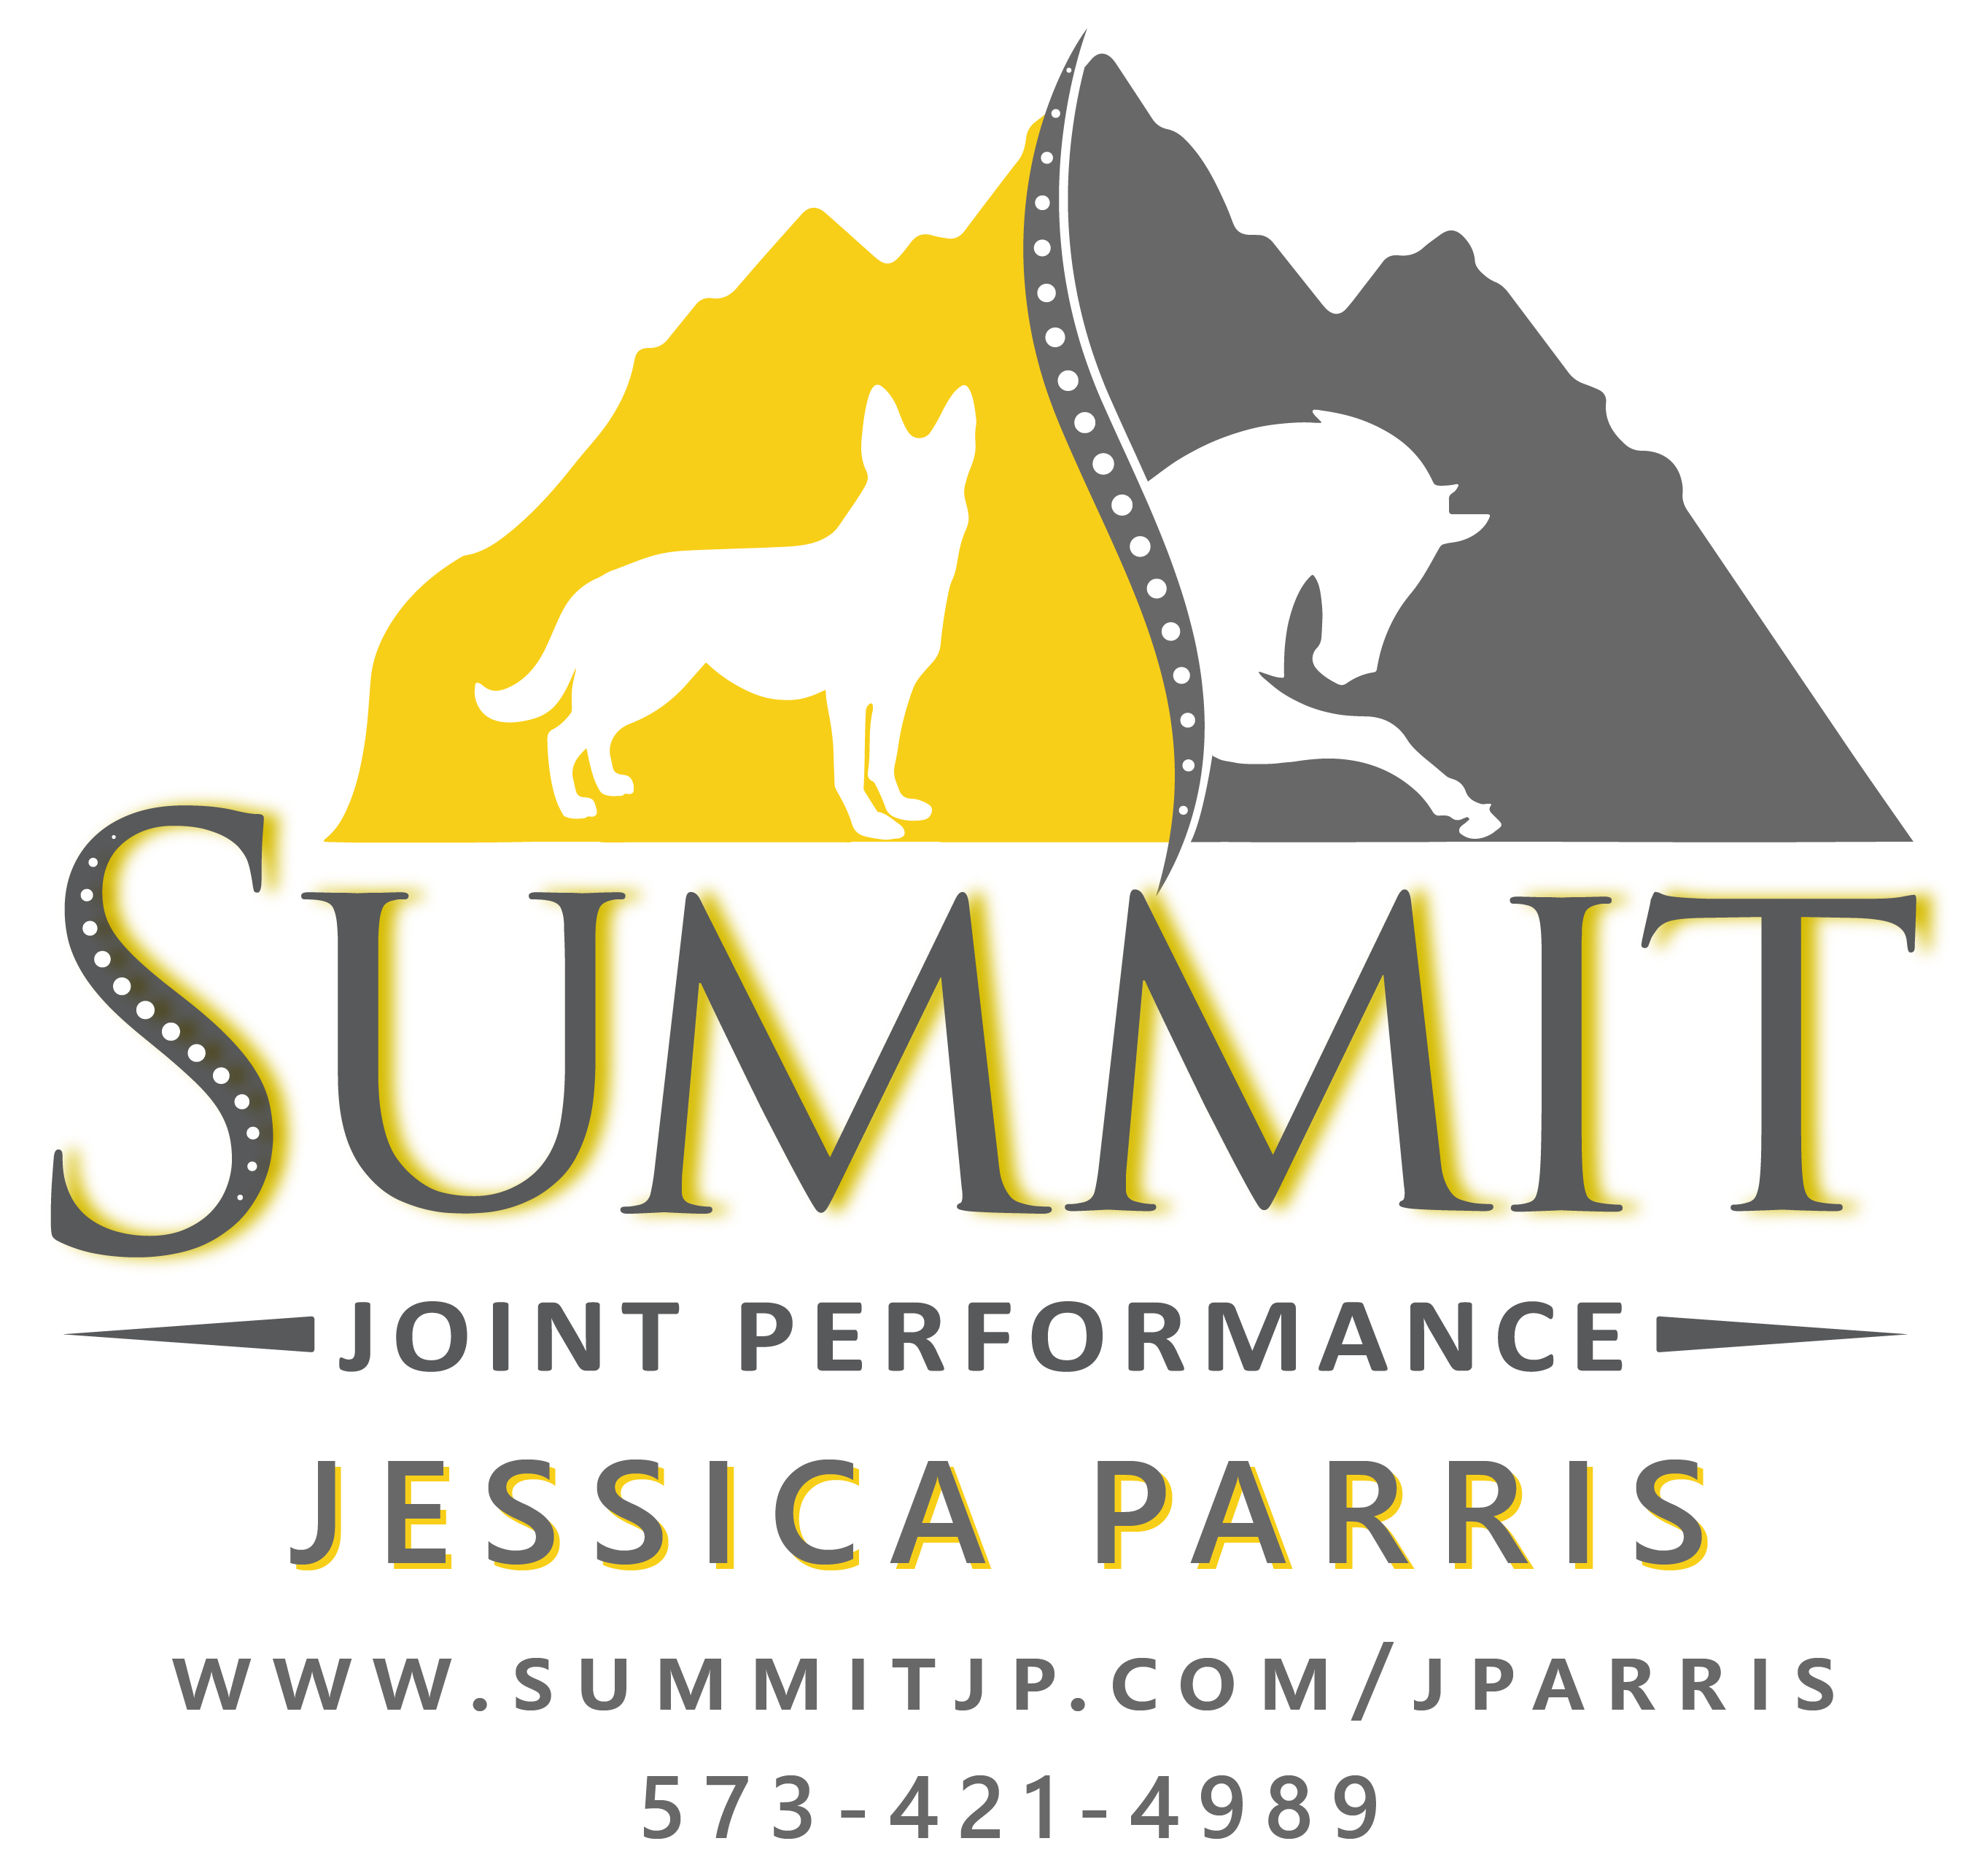 Summit Joint Jessica Parris